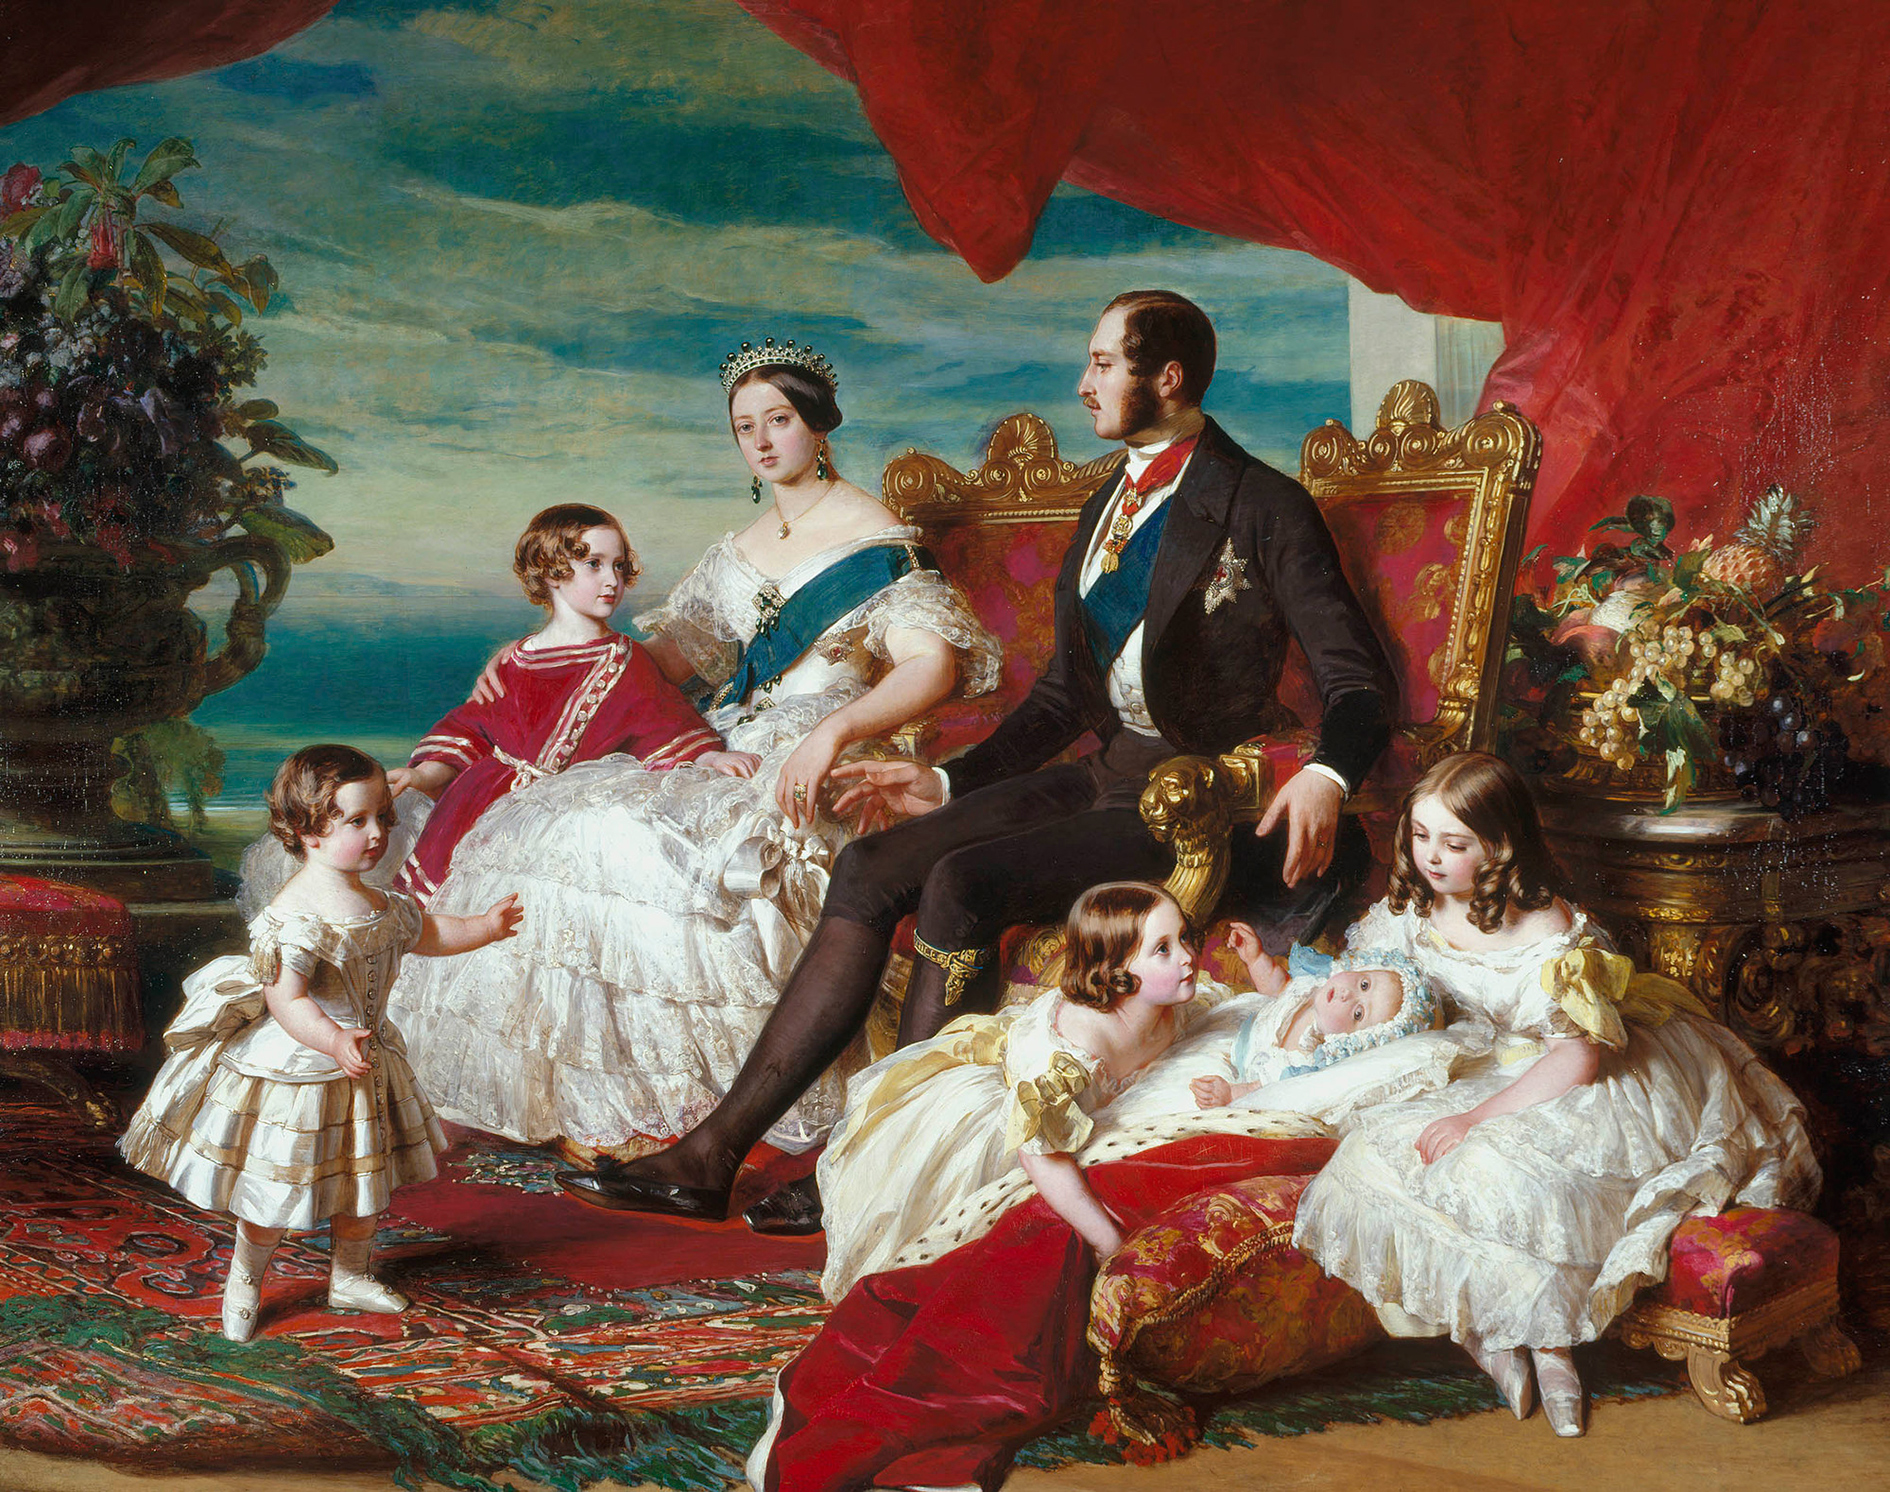 https://upload.wikimedia.org/wikipedia/commons/a/a1/Franz_Xaver_Winterhalter_Family_of_Queen_Victoria.jpg